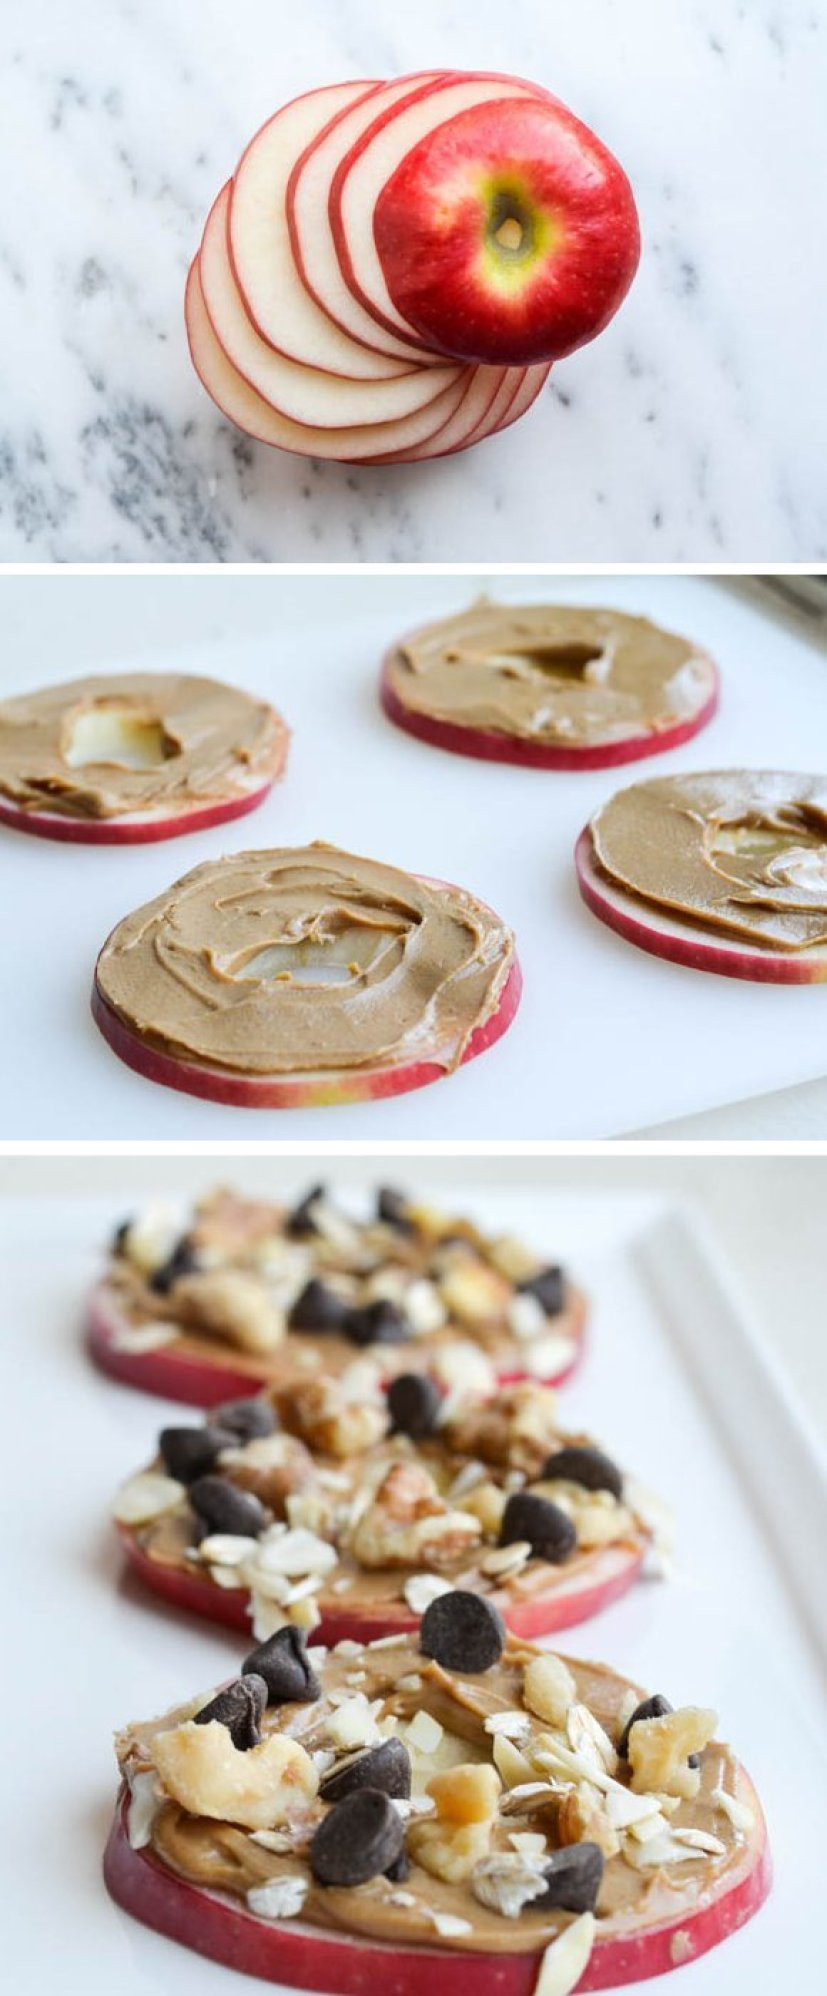 Healthy Snacks For Kids To Make  25 Fun and Healthy Snacks for Kids Uplifting Mayhem